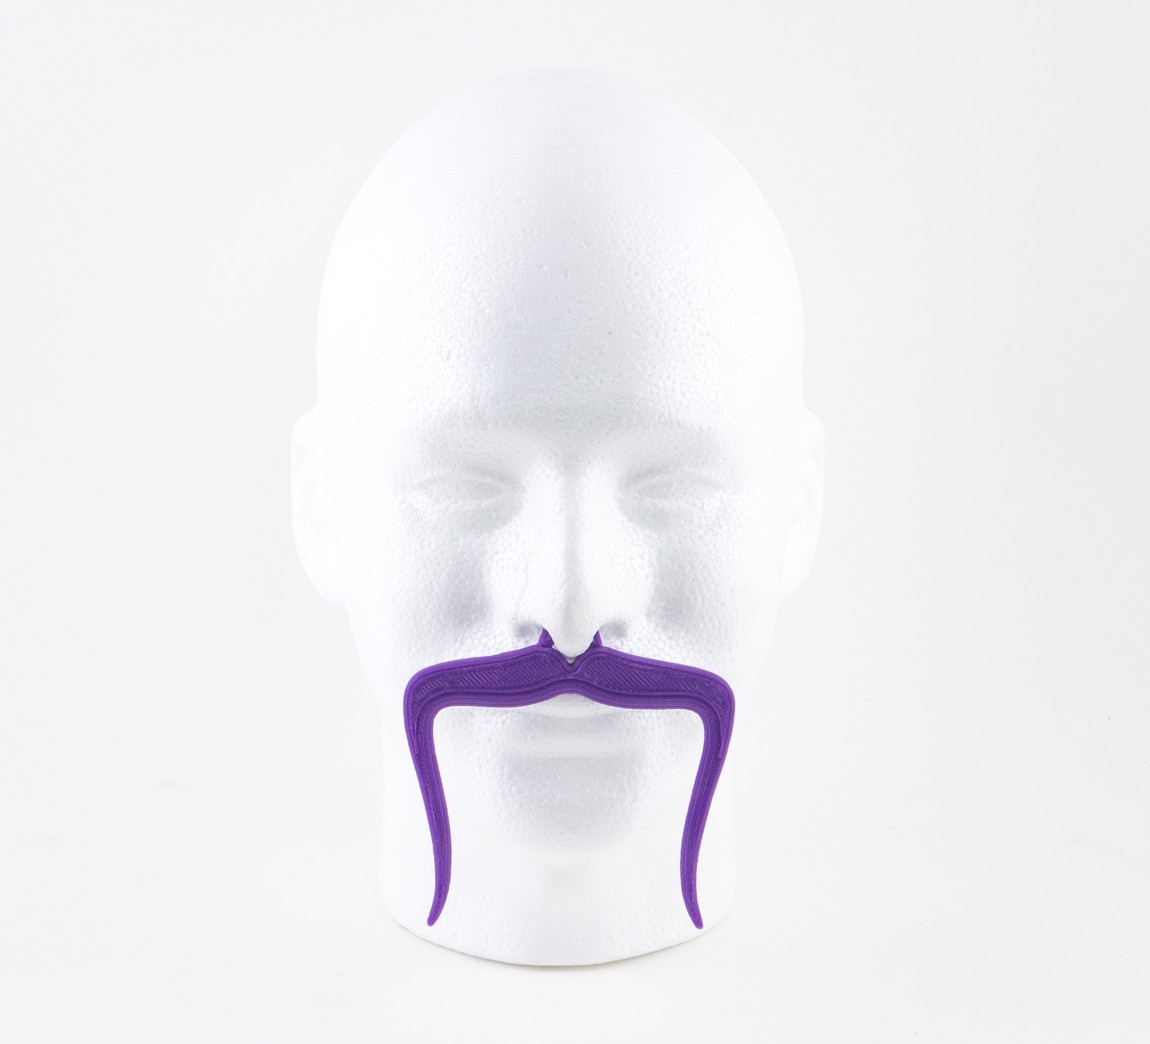 f8f5dc8e69e2b5f1579d8e9dcbcfec85_1443220277120_NMD000295-041_@2x.jpg Download free STL file Horseshoe Mustachio • 3D printing object, Lucy_Haribert